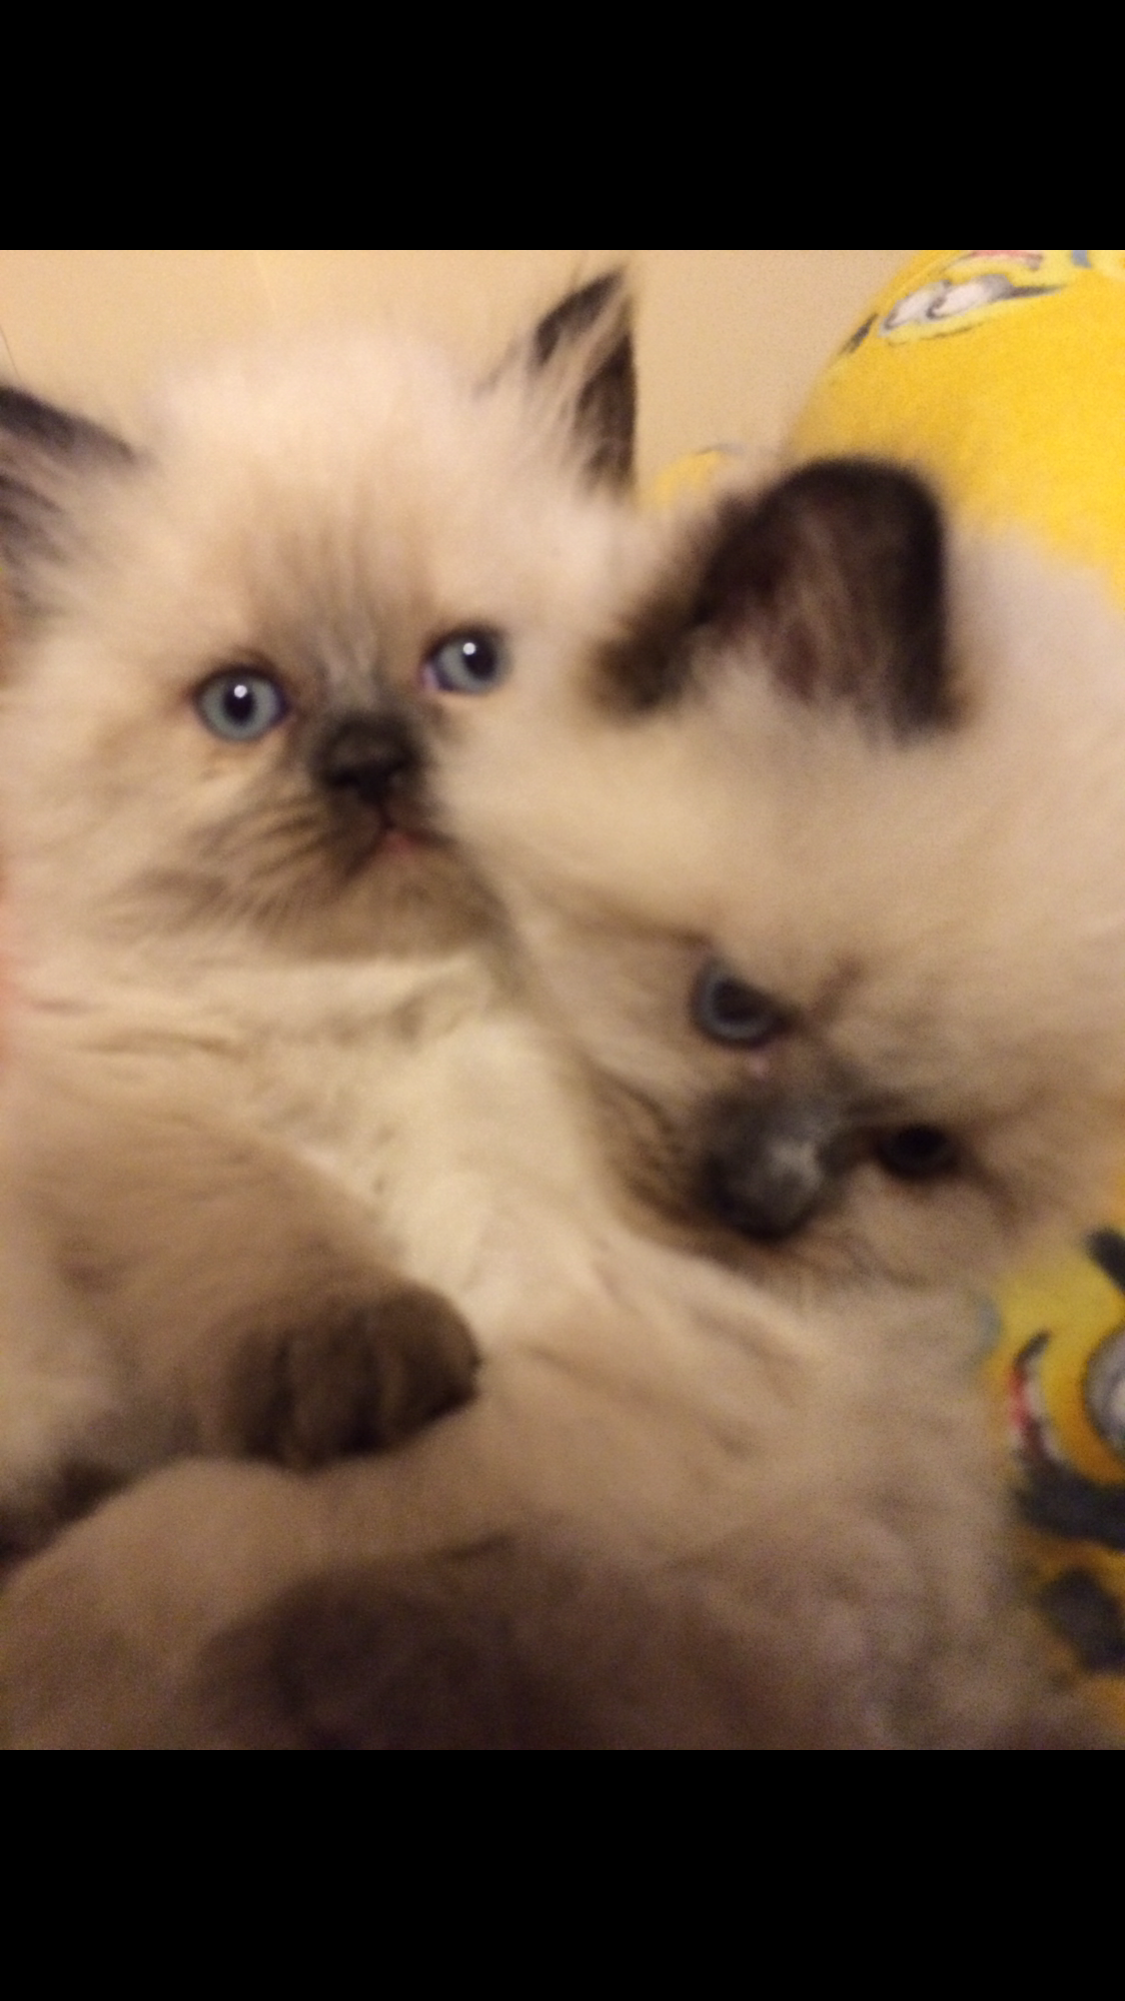 Himalayan kittens for sale www.khloeskittens.com | Himalayan ...